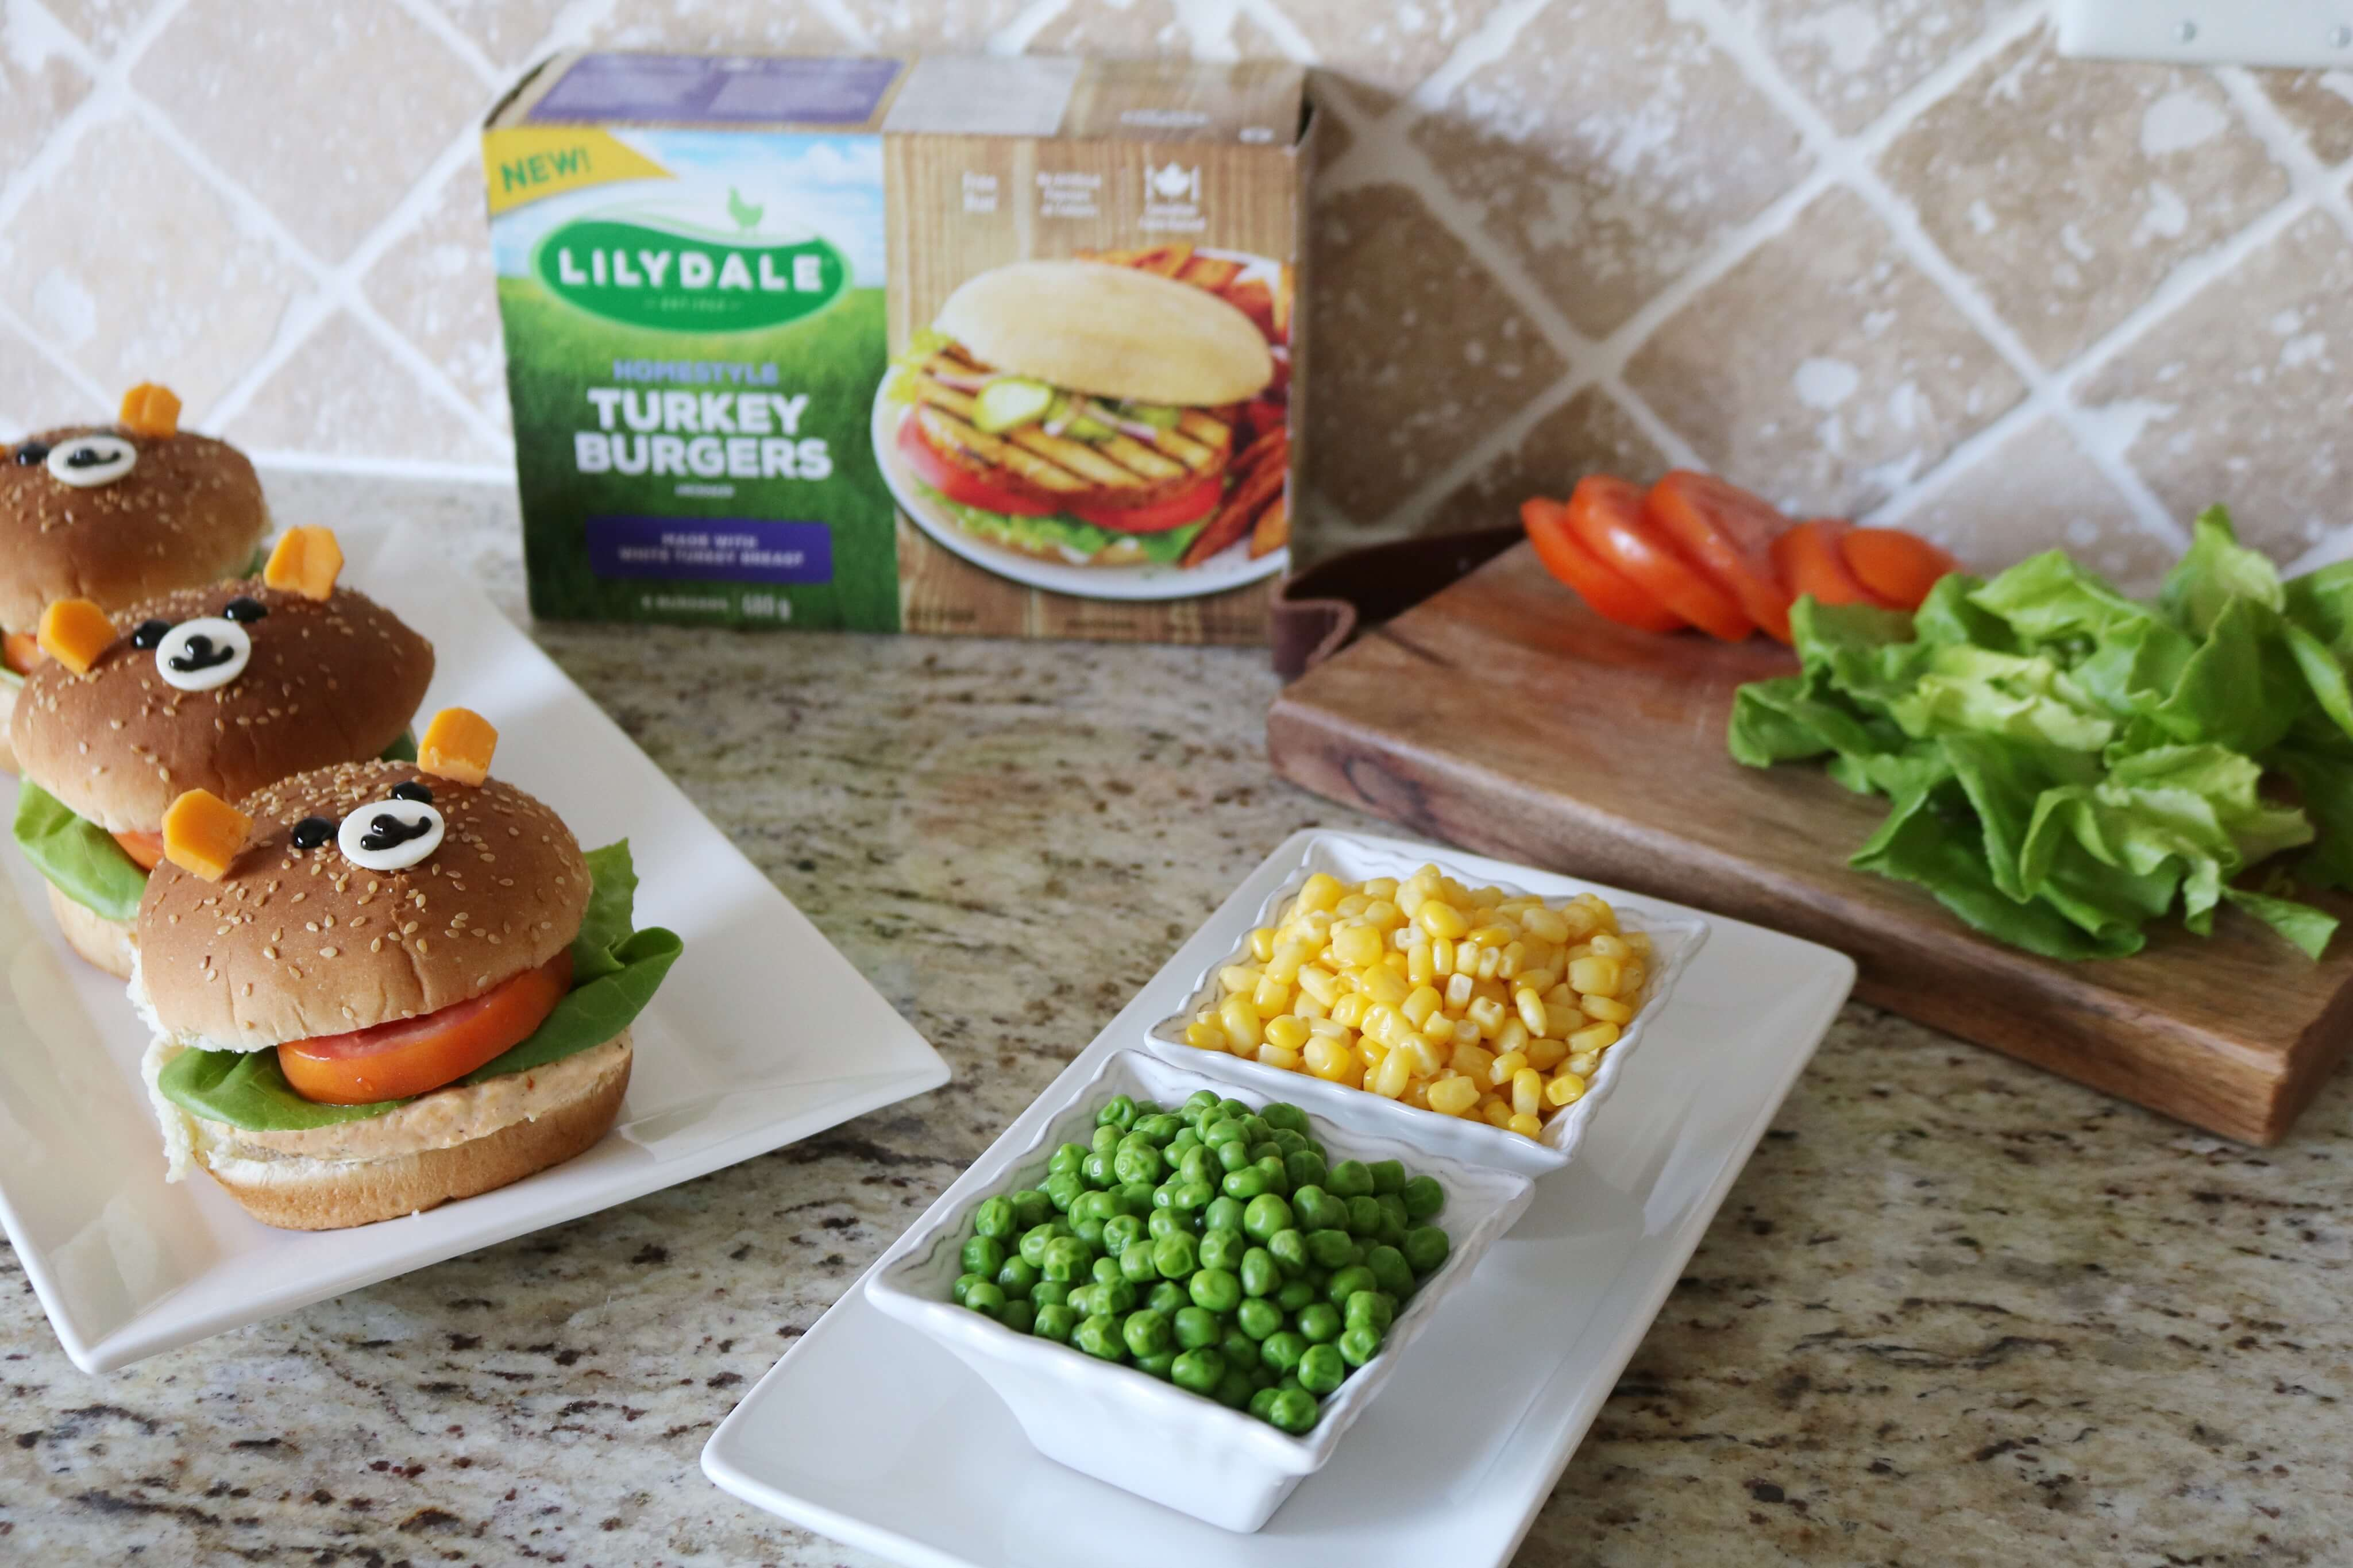 Cute bear burgers for kids; Making Dinner fun with Homestyle Turkey Burgers from Lilydale sparkleshinylove